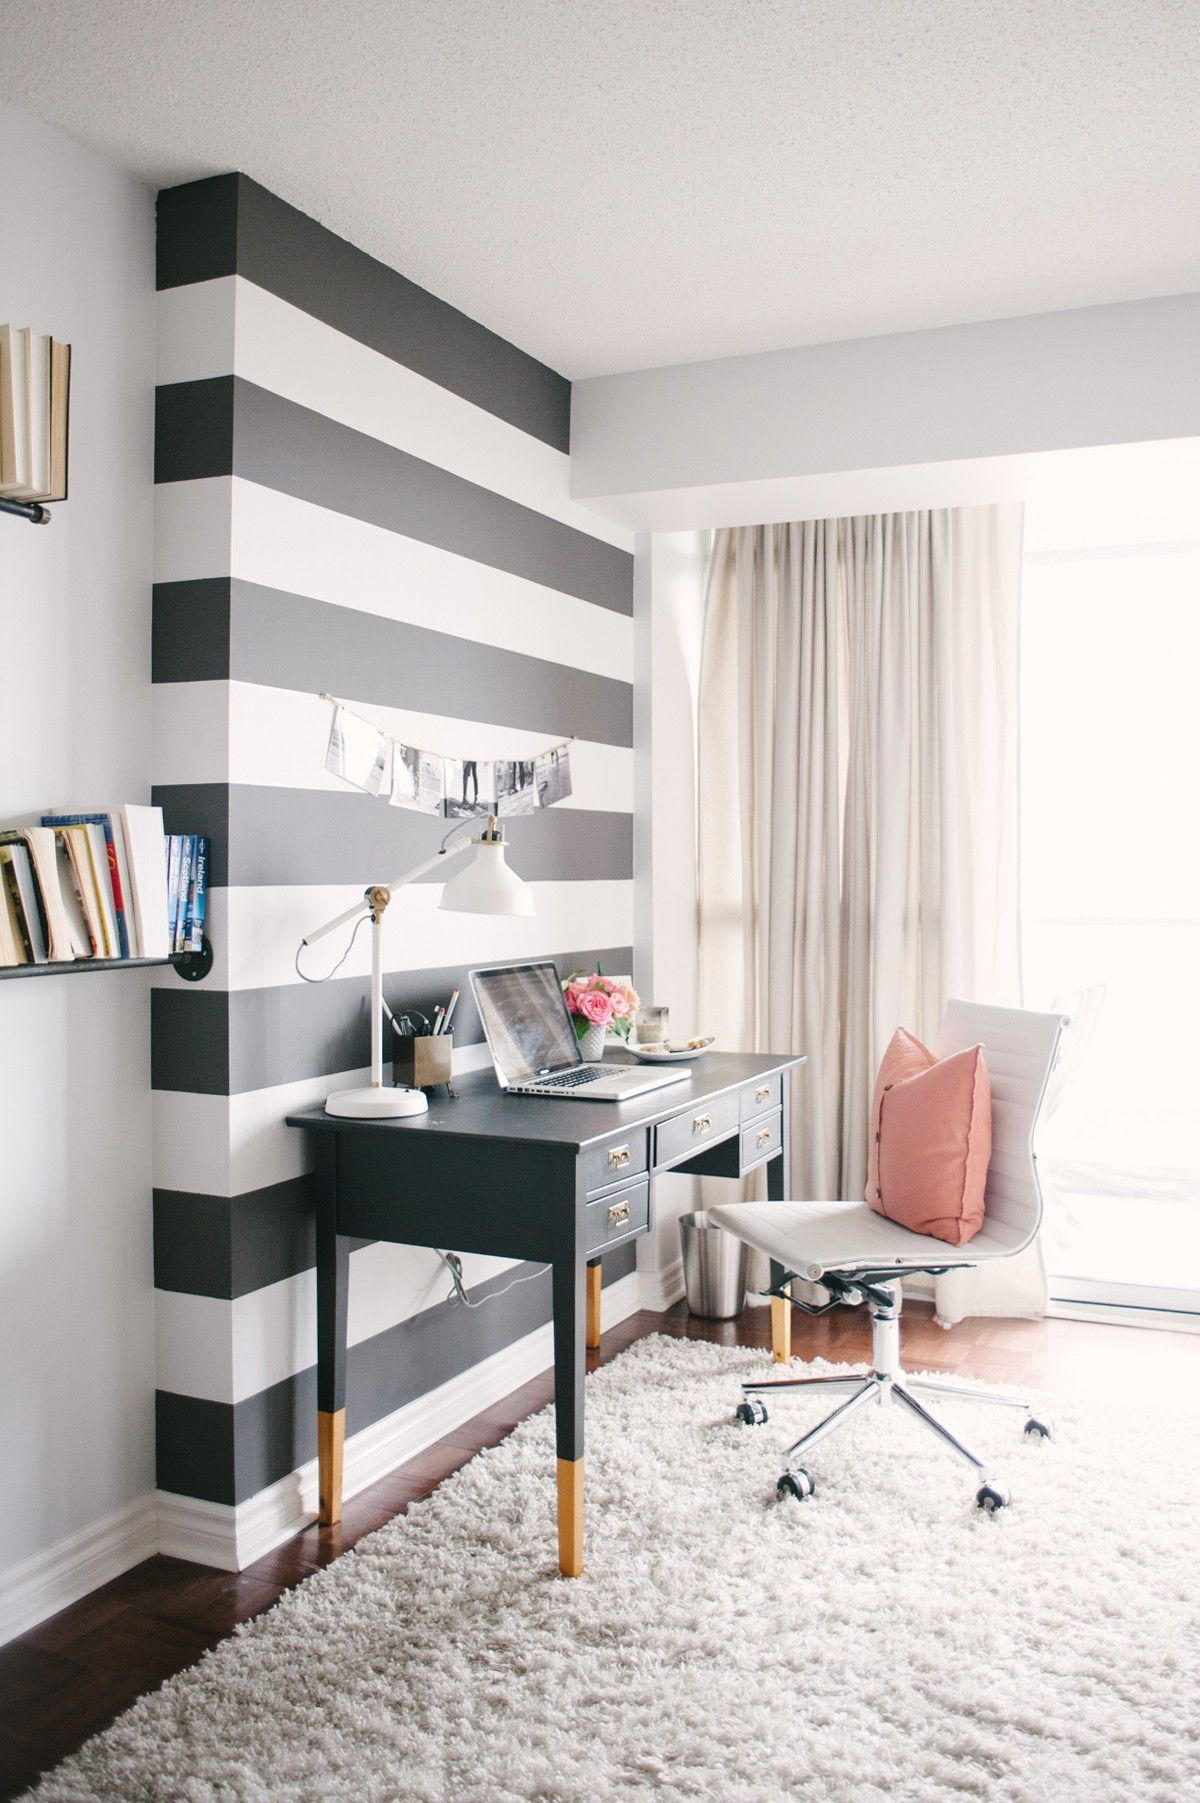 Black white and pink office lark  linen interior design home also best inspired interiors images in paint colors rh pinterest